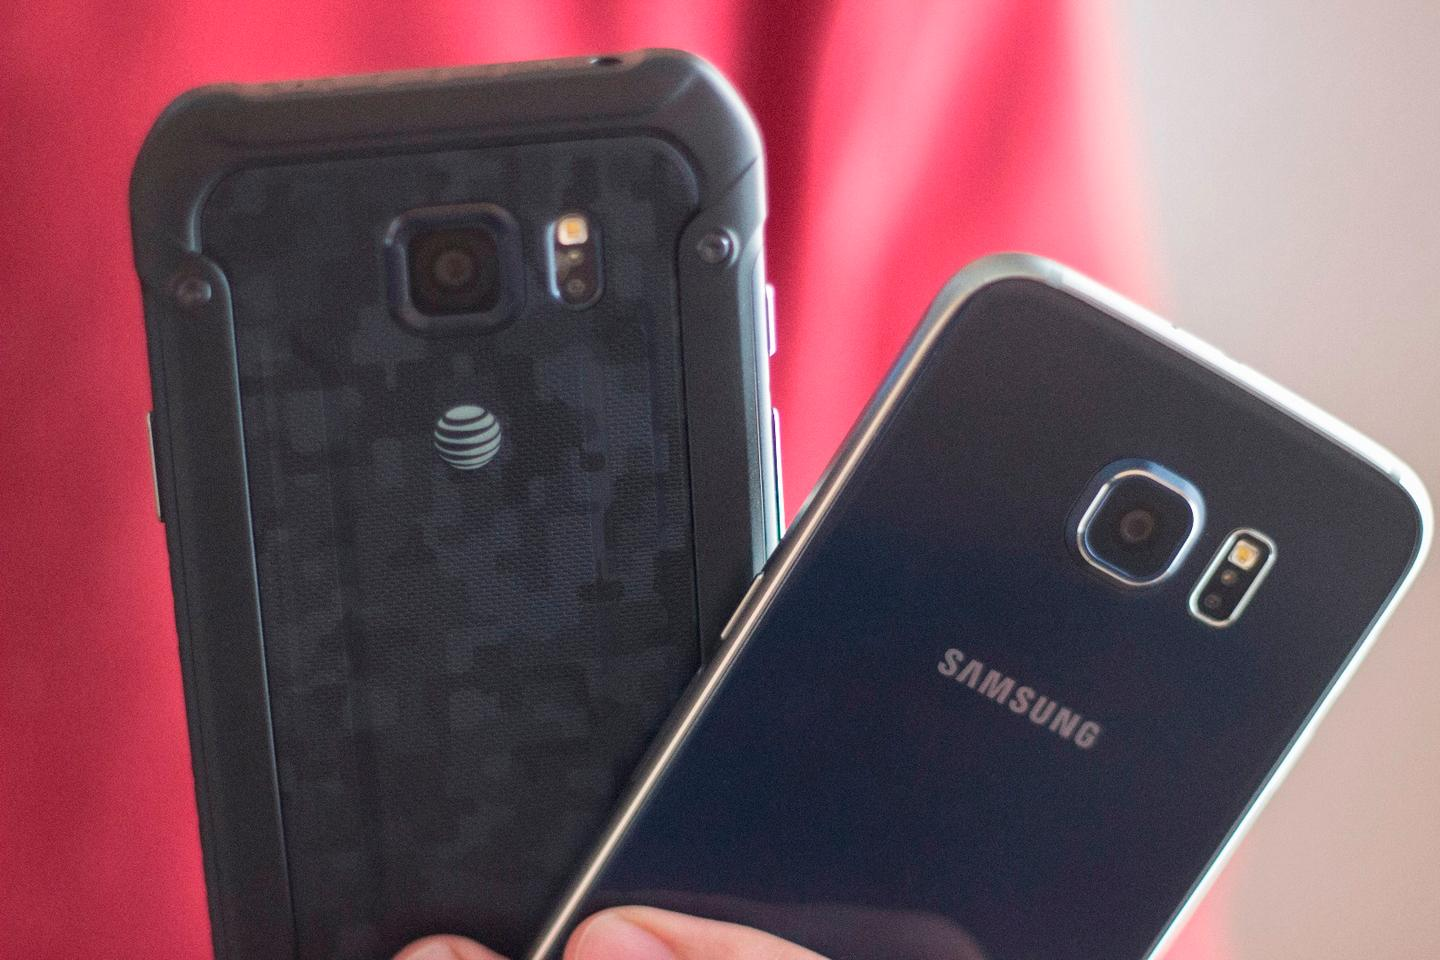 Galaxy S6 Active (left) with the standard Galaxy S6